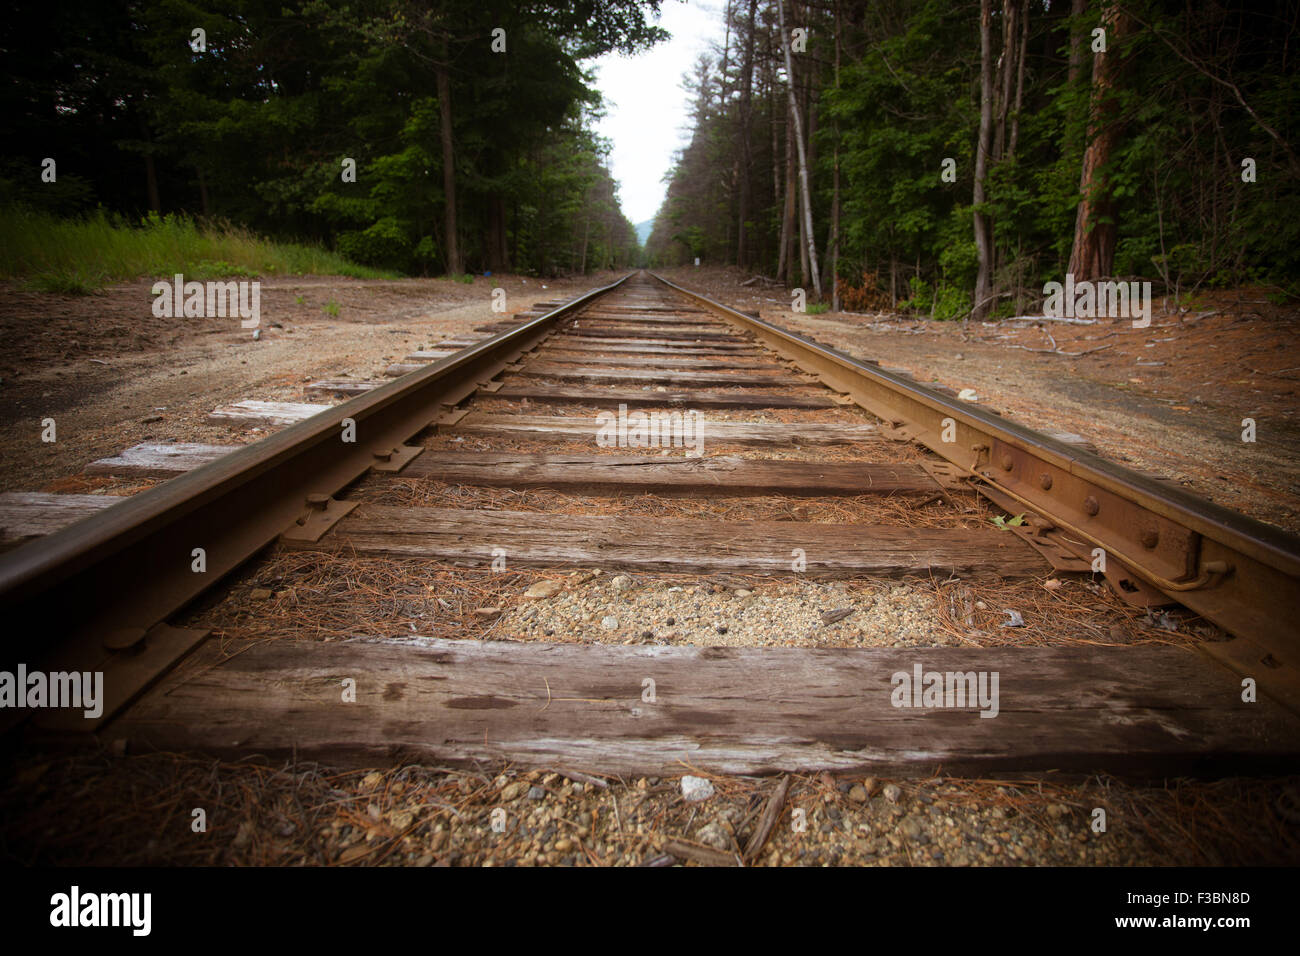 Old wooden railroad tracks running through countryside - Stock Image